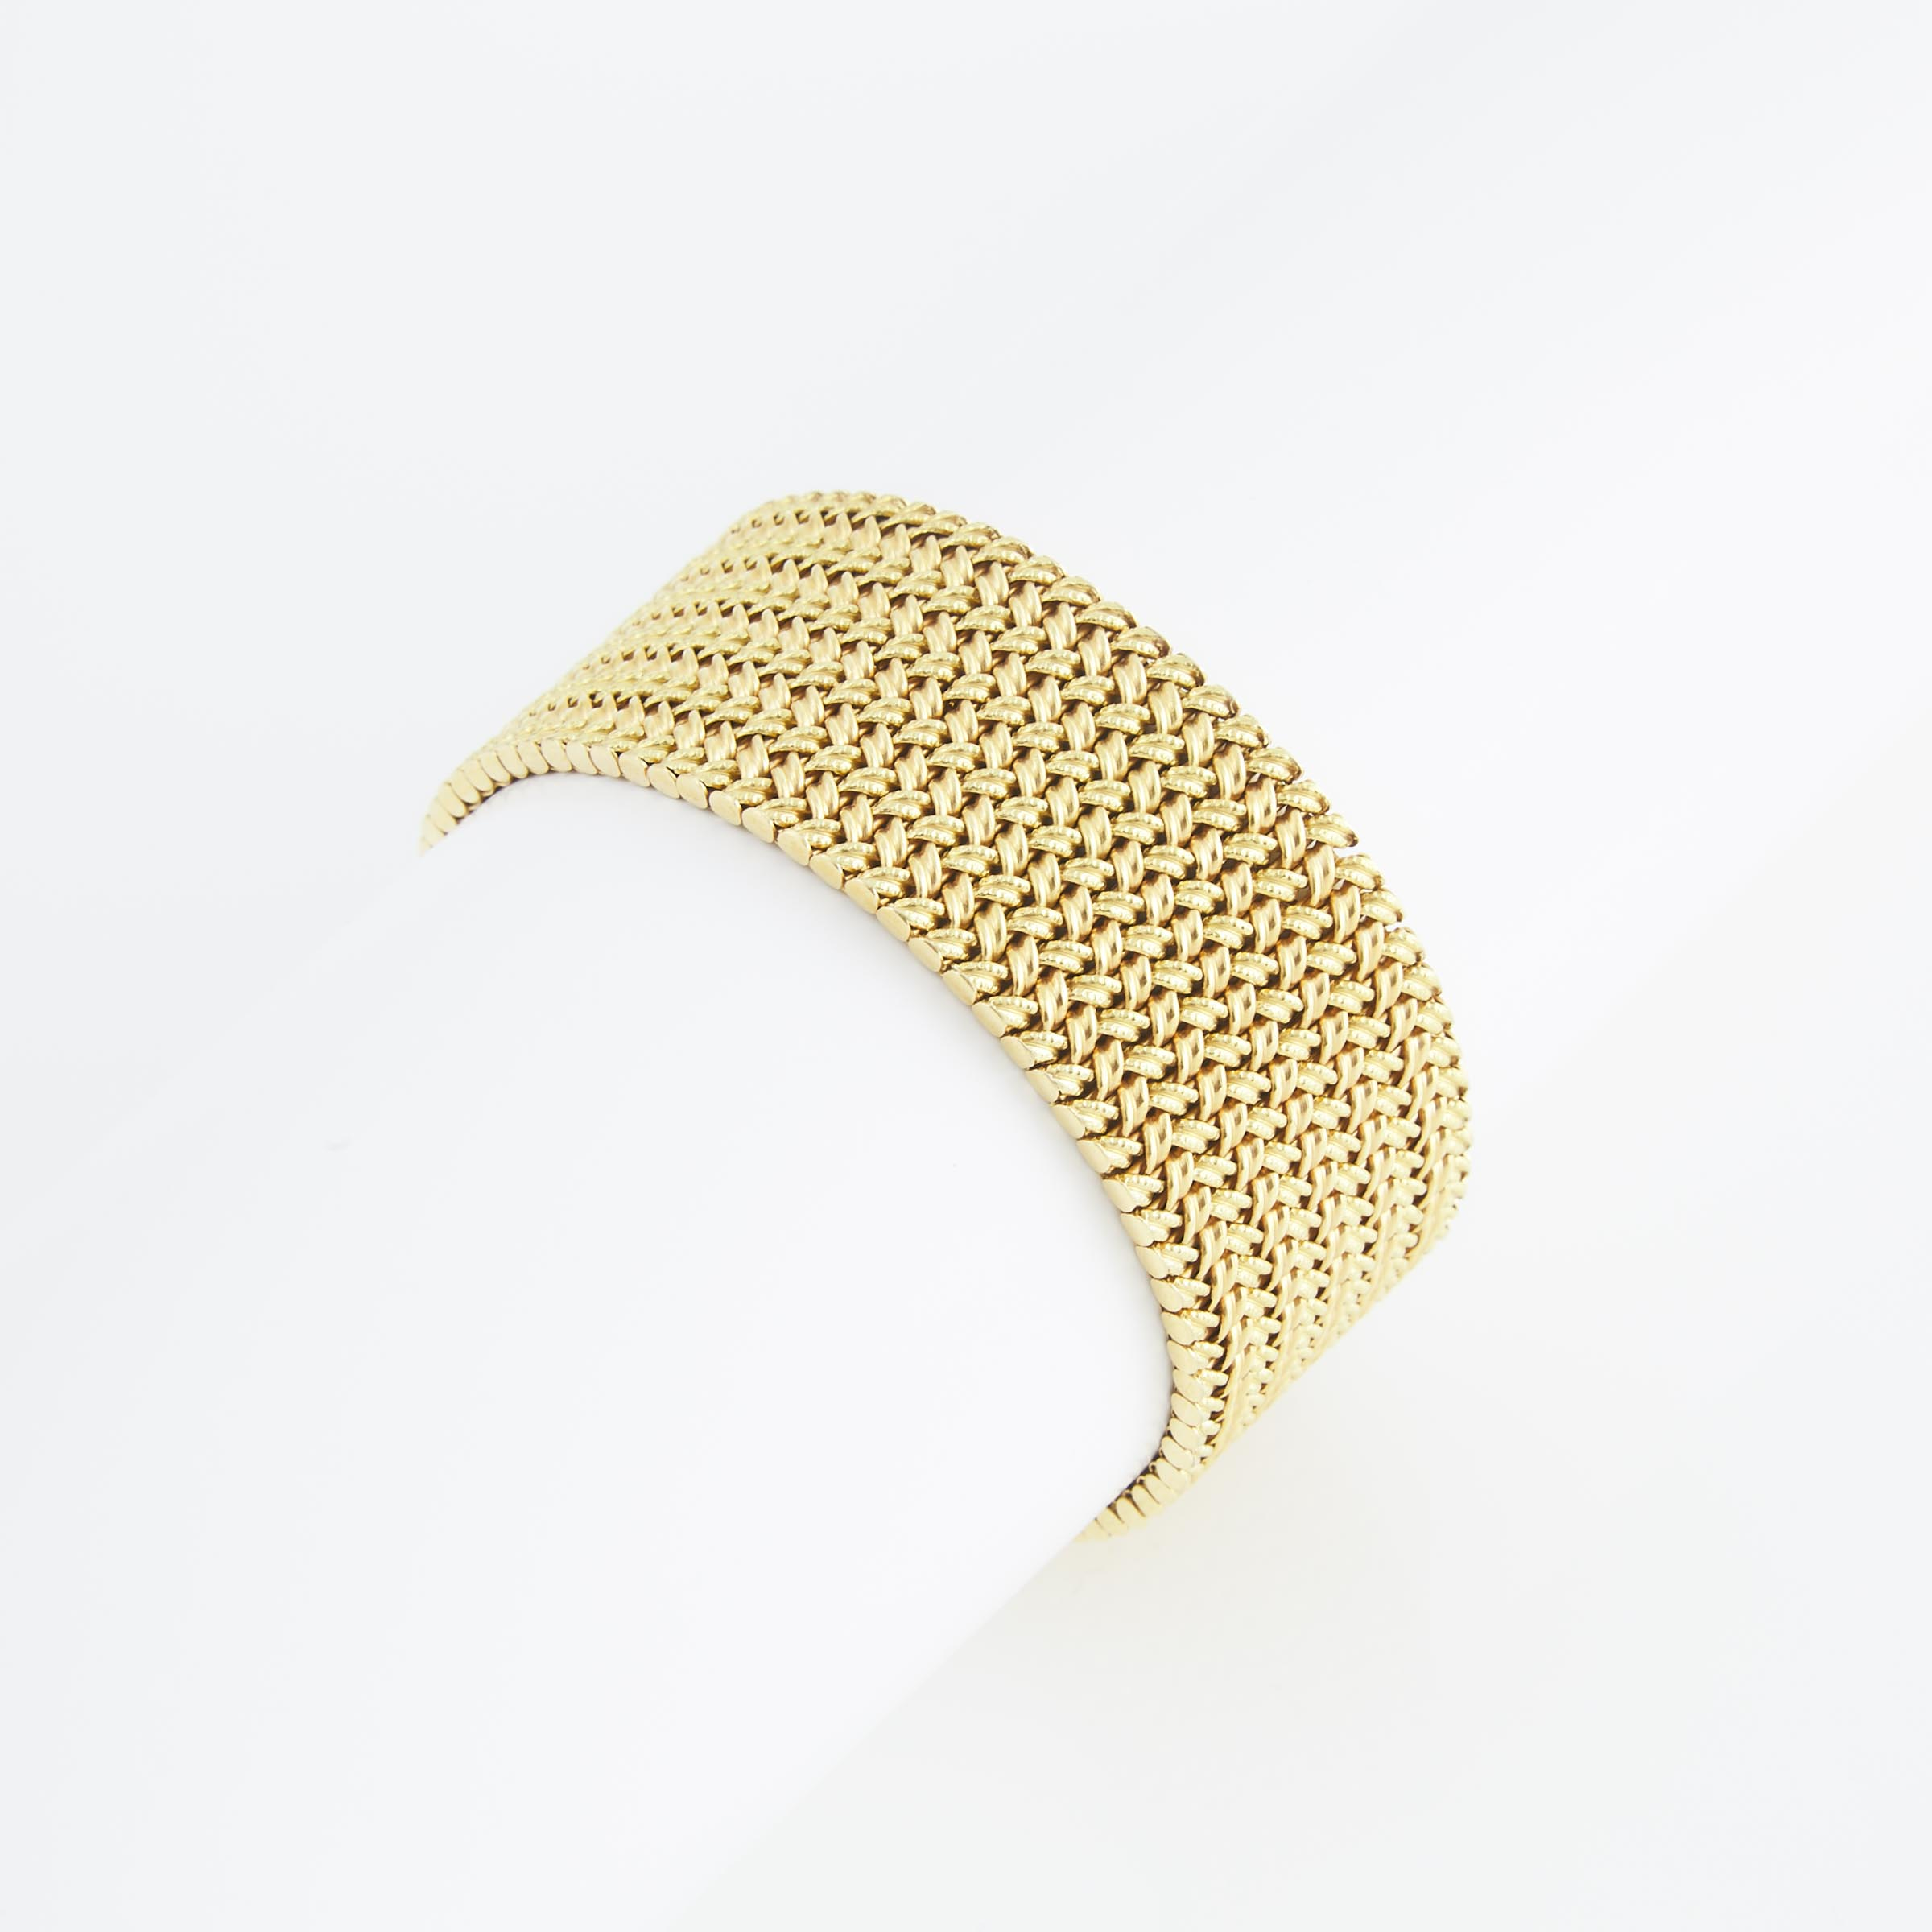 18k Yellow Gold Strap Bracelet